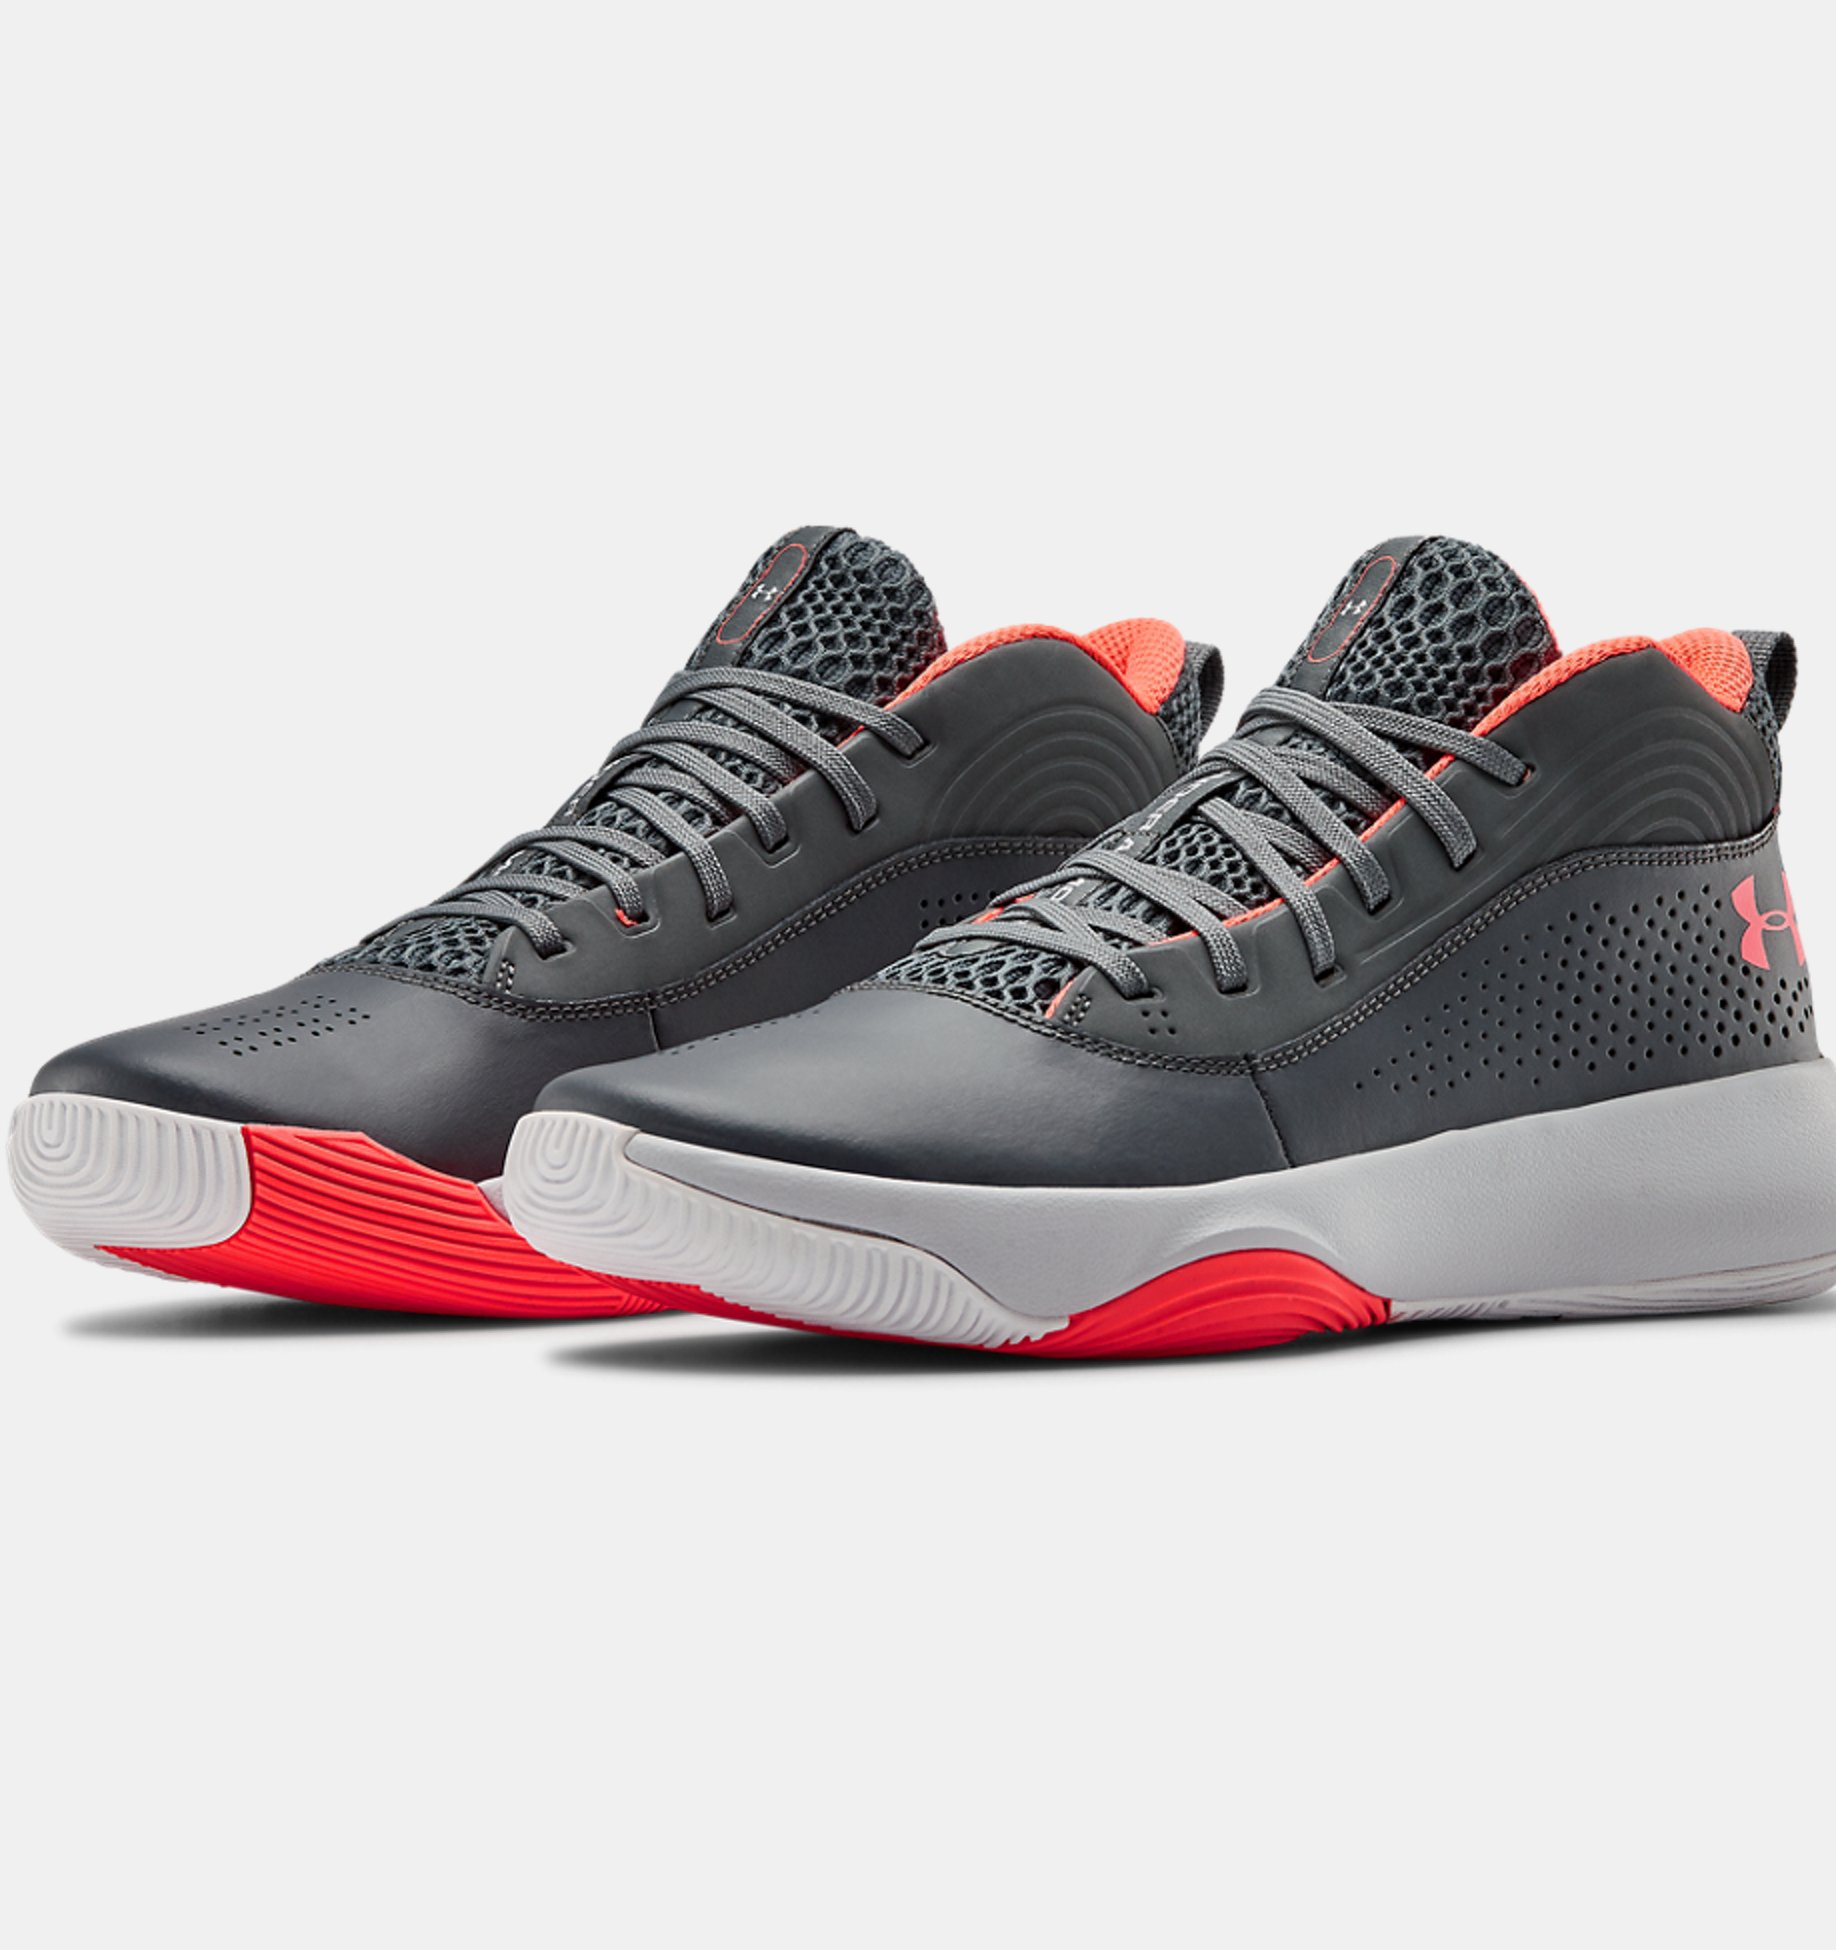 10 Best Basketball Shoes Under $100 for 2019 Best